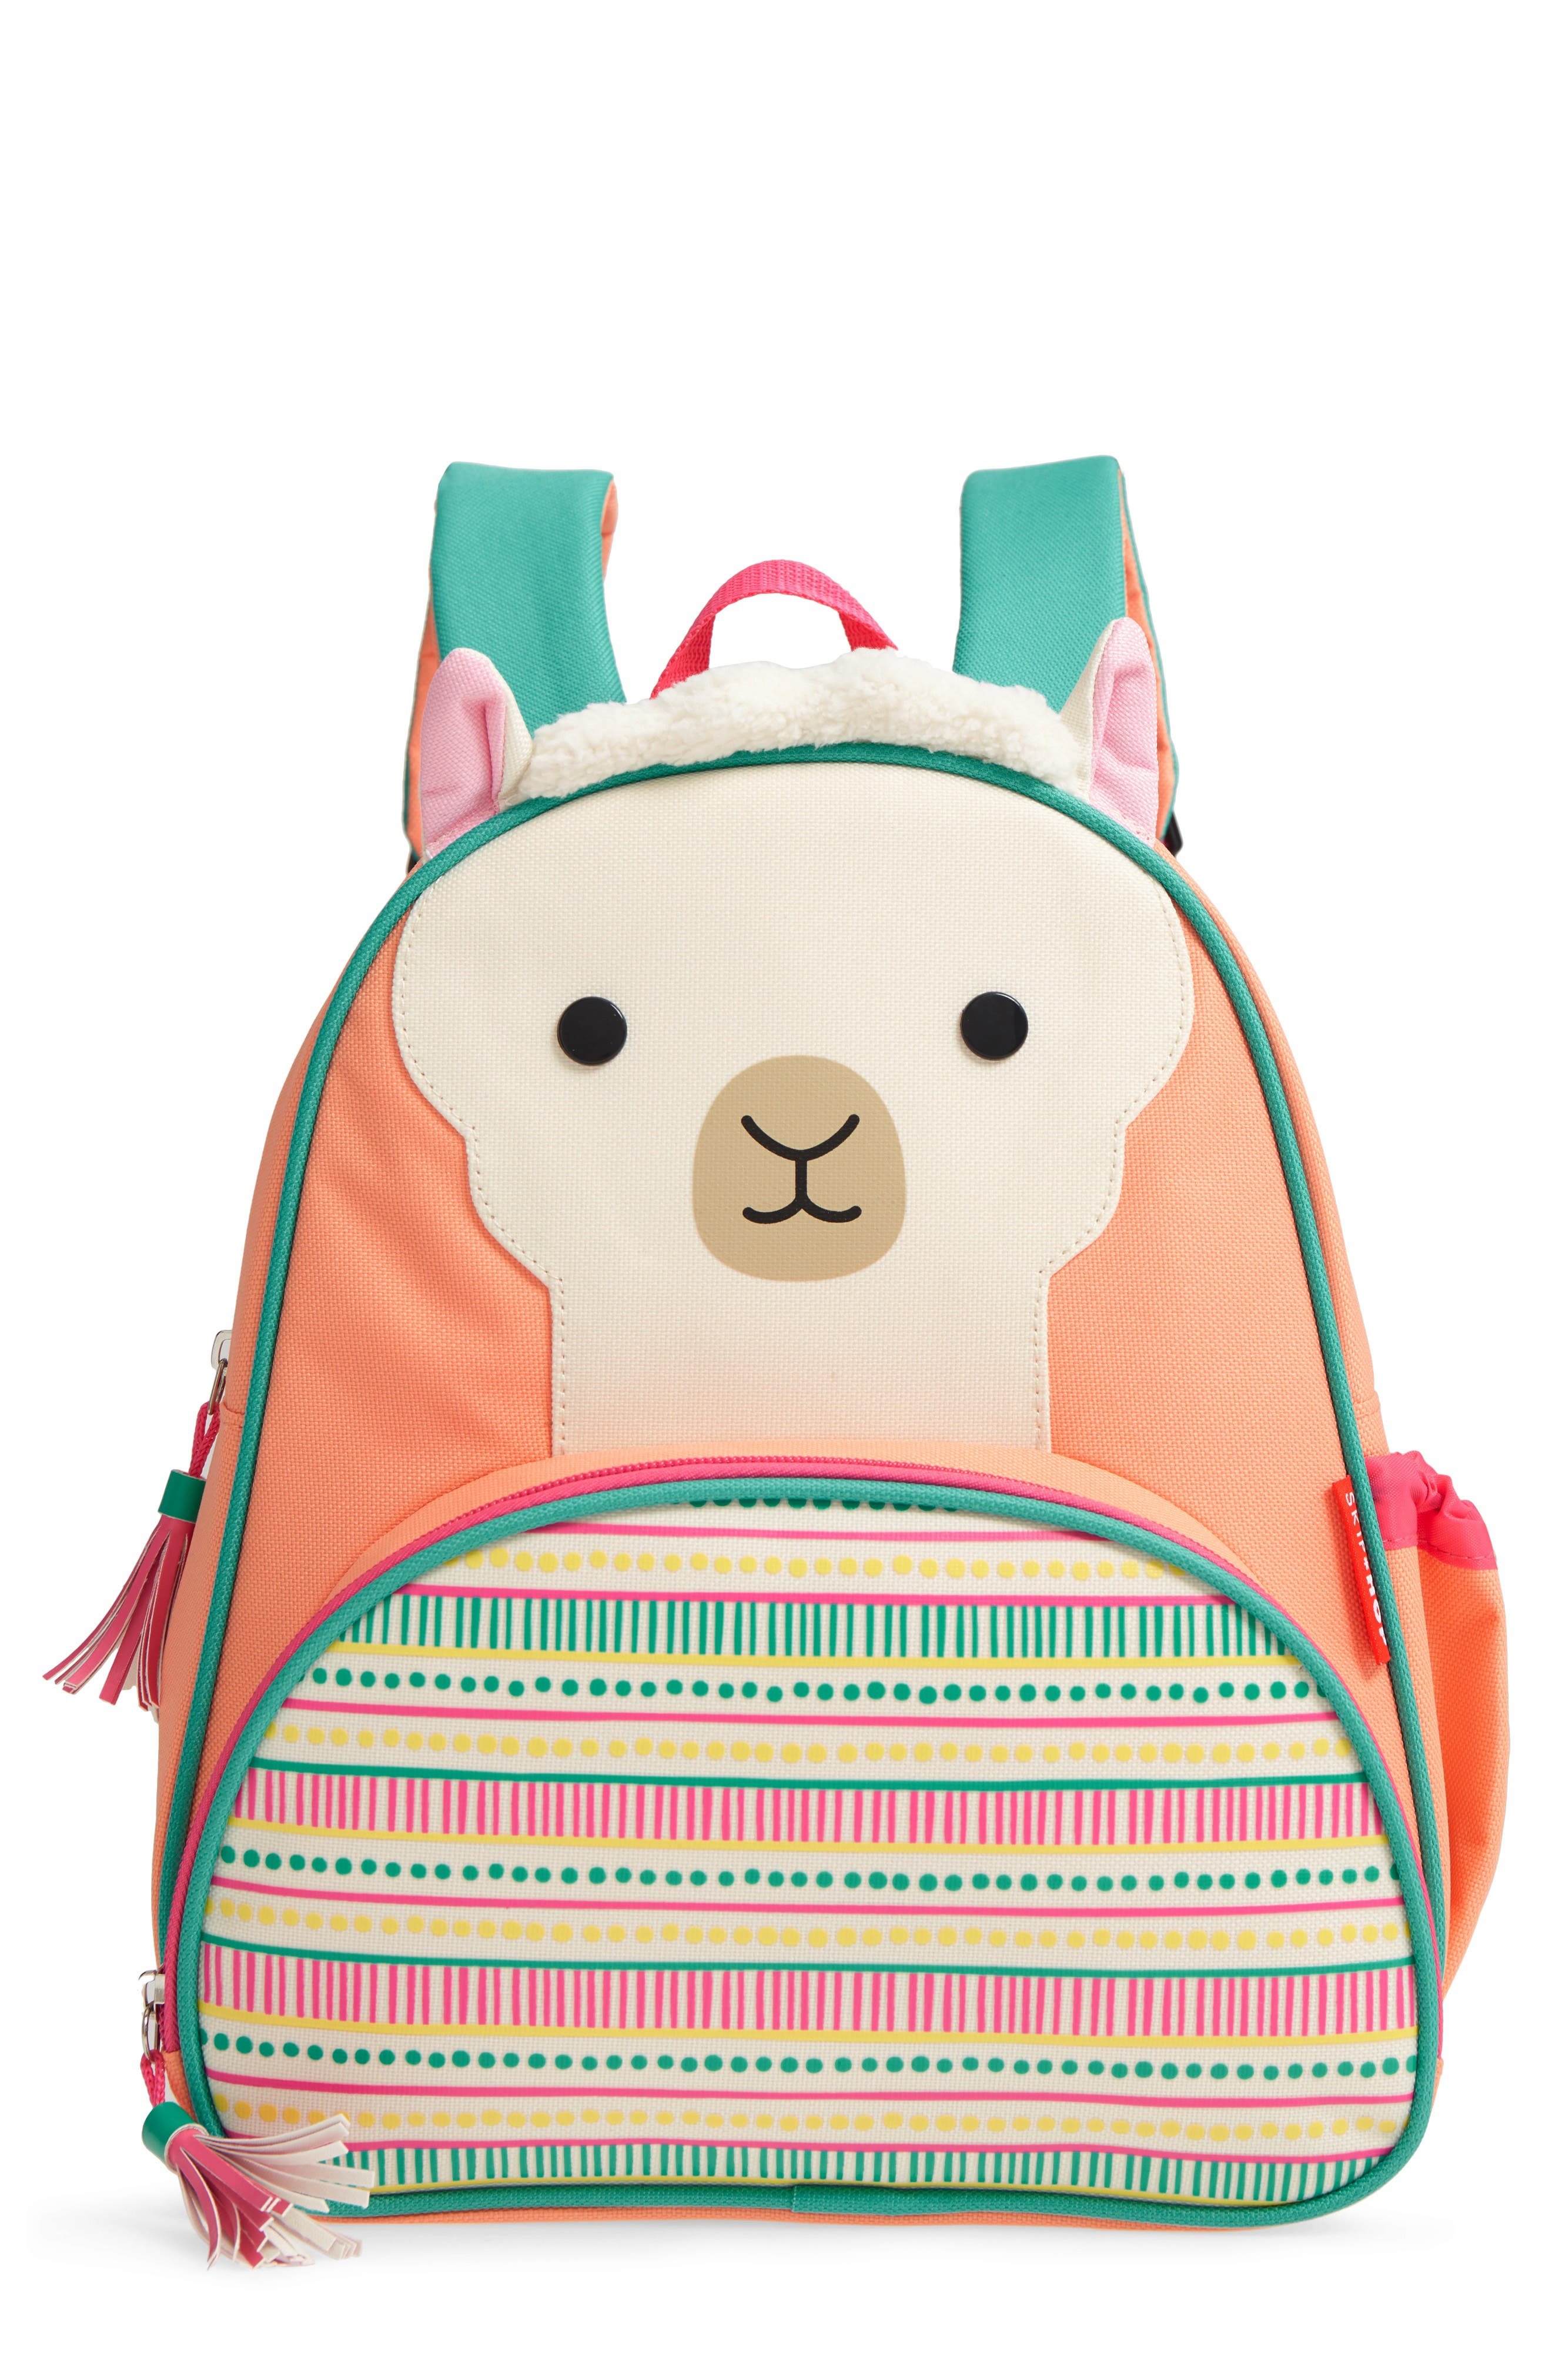 Zoo Pack Backpack,                             Main thumbnail 1, color,                             Pink Multi